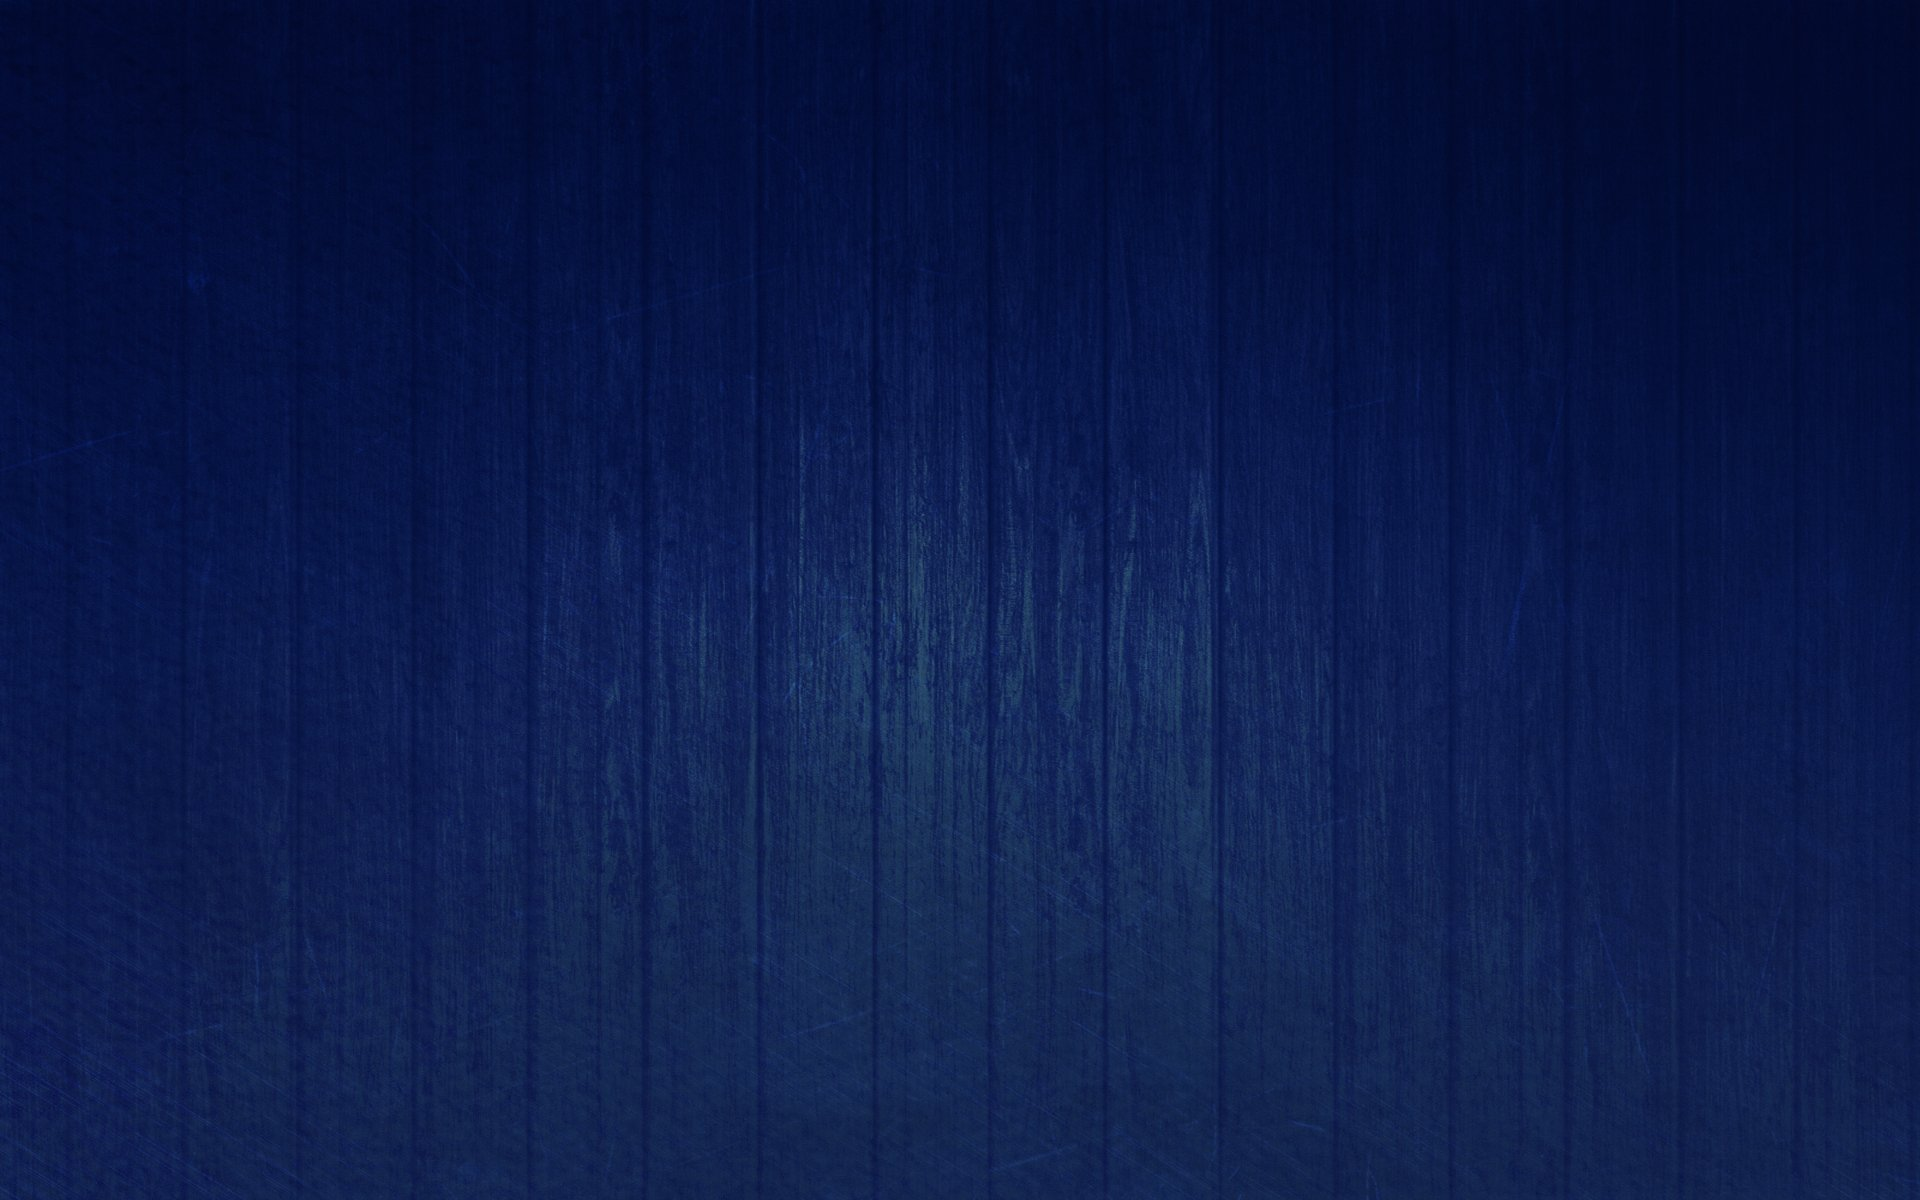 Wallpaper texture stripes dark blue wallpapers textures download